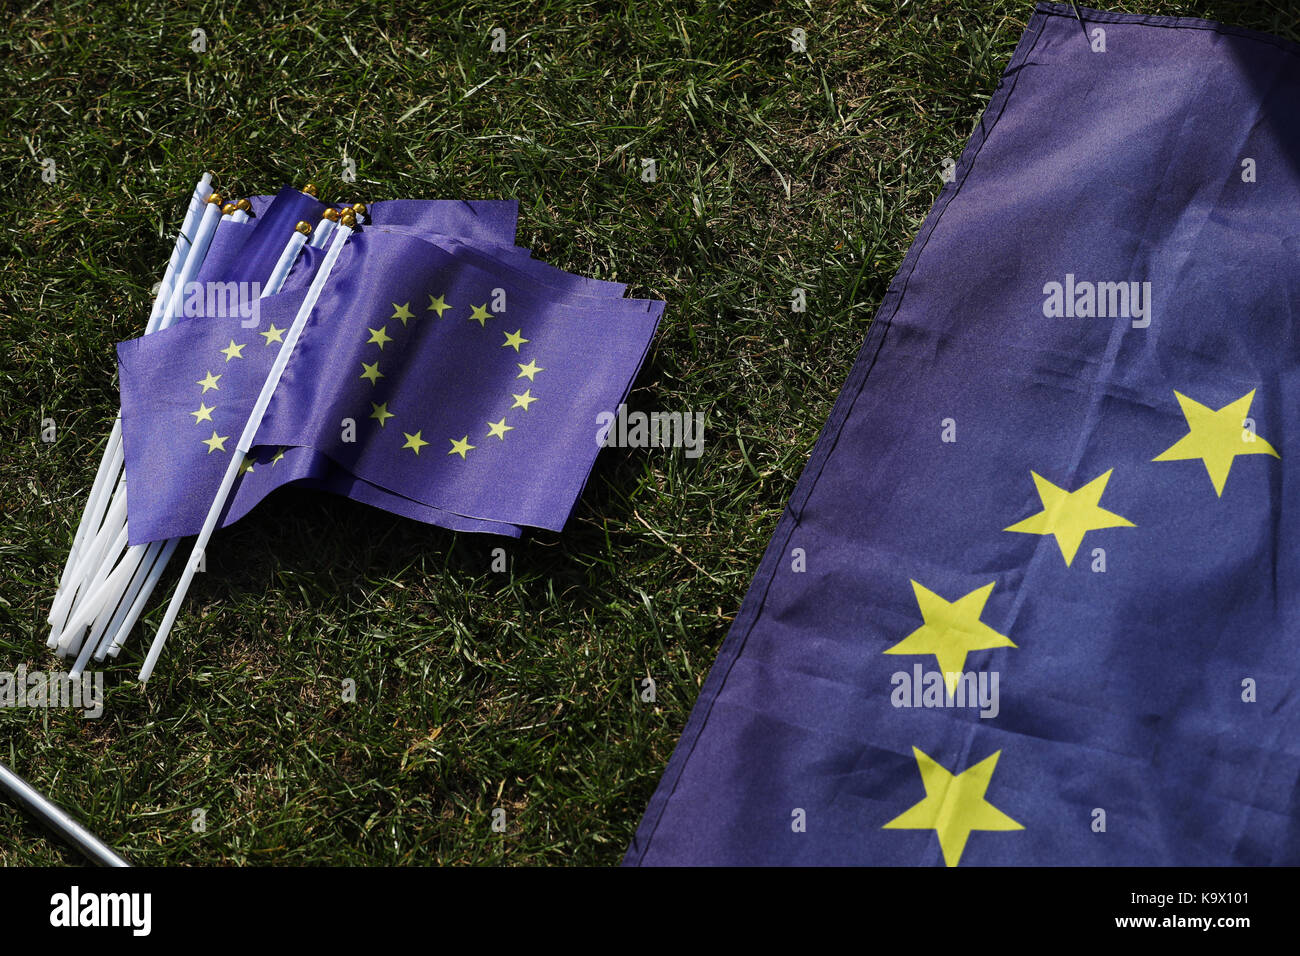 Brighton, UK. 24th September, 2017. European Union flags lay on the ground during a pro European Union protest against - Stock Image